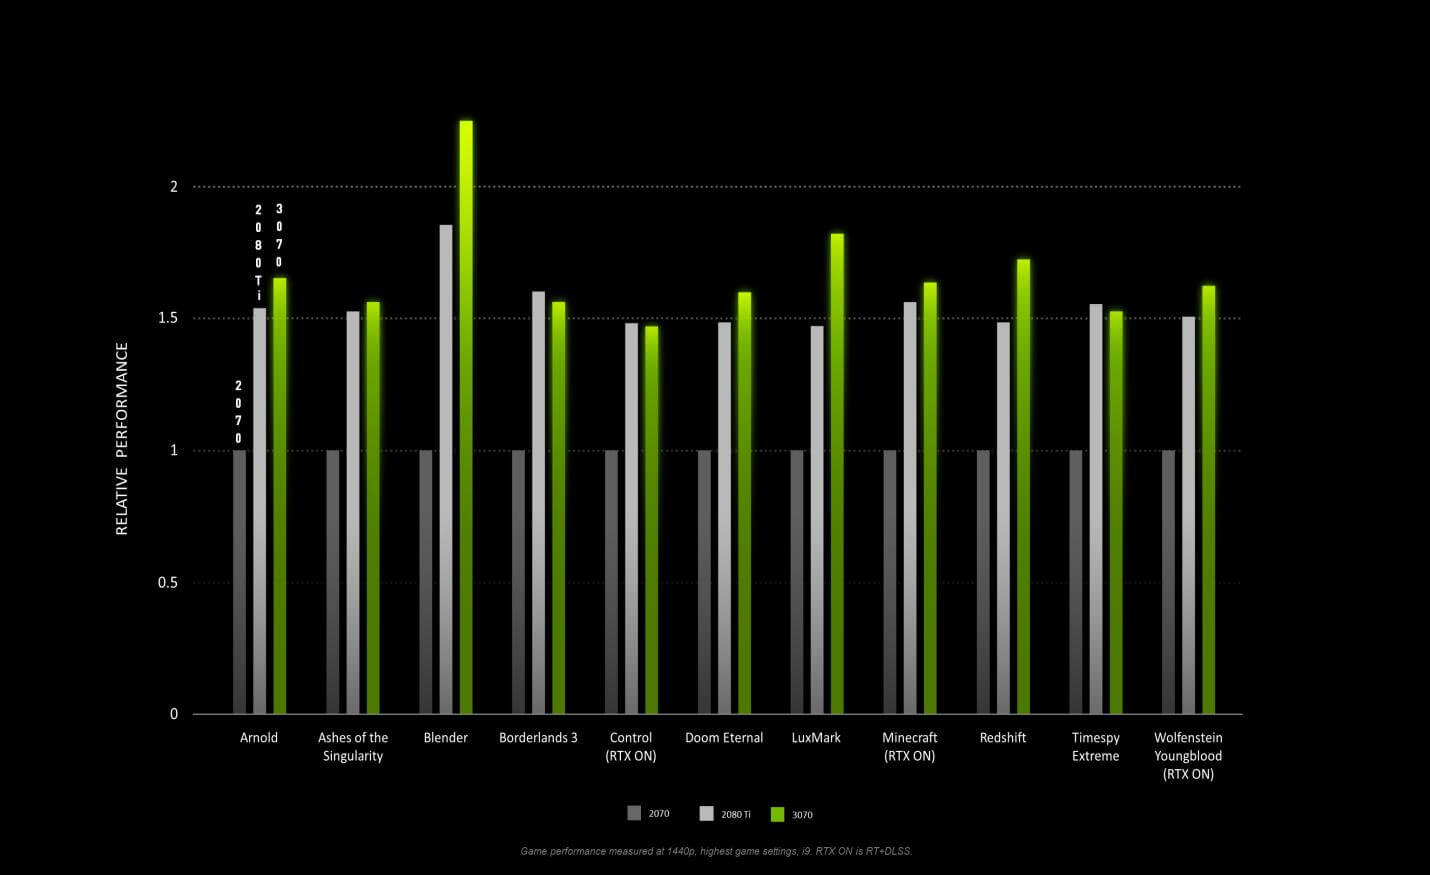 NVIDIA first-party gaming benchmarks